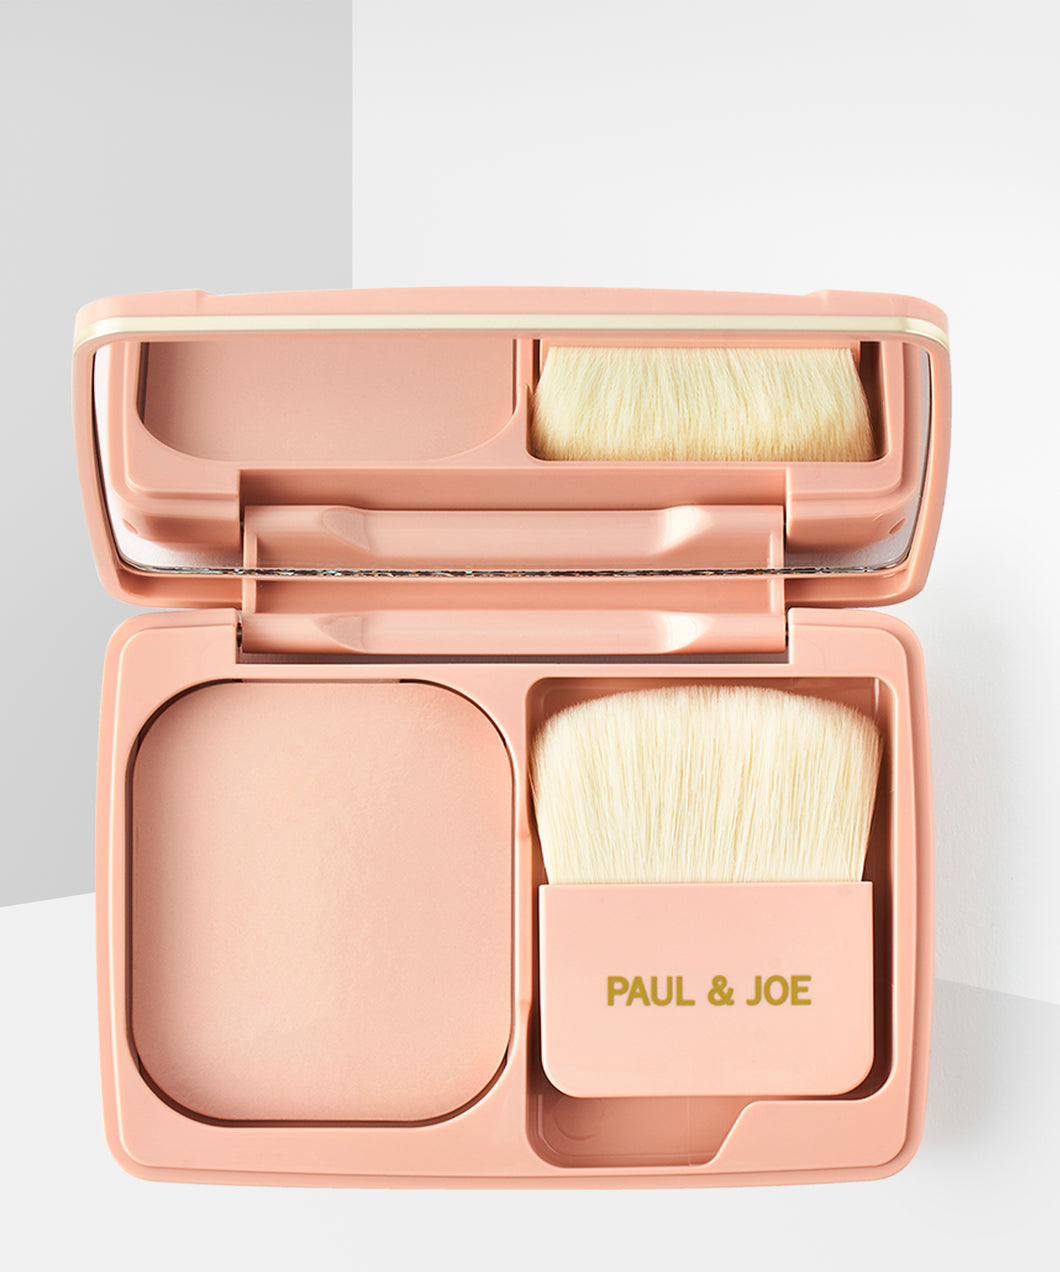 Paul & Joe Cosmetics Powder Foundation Case